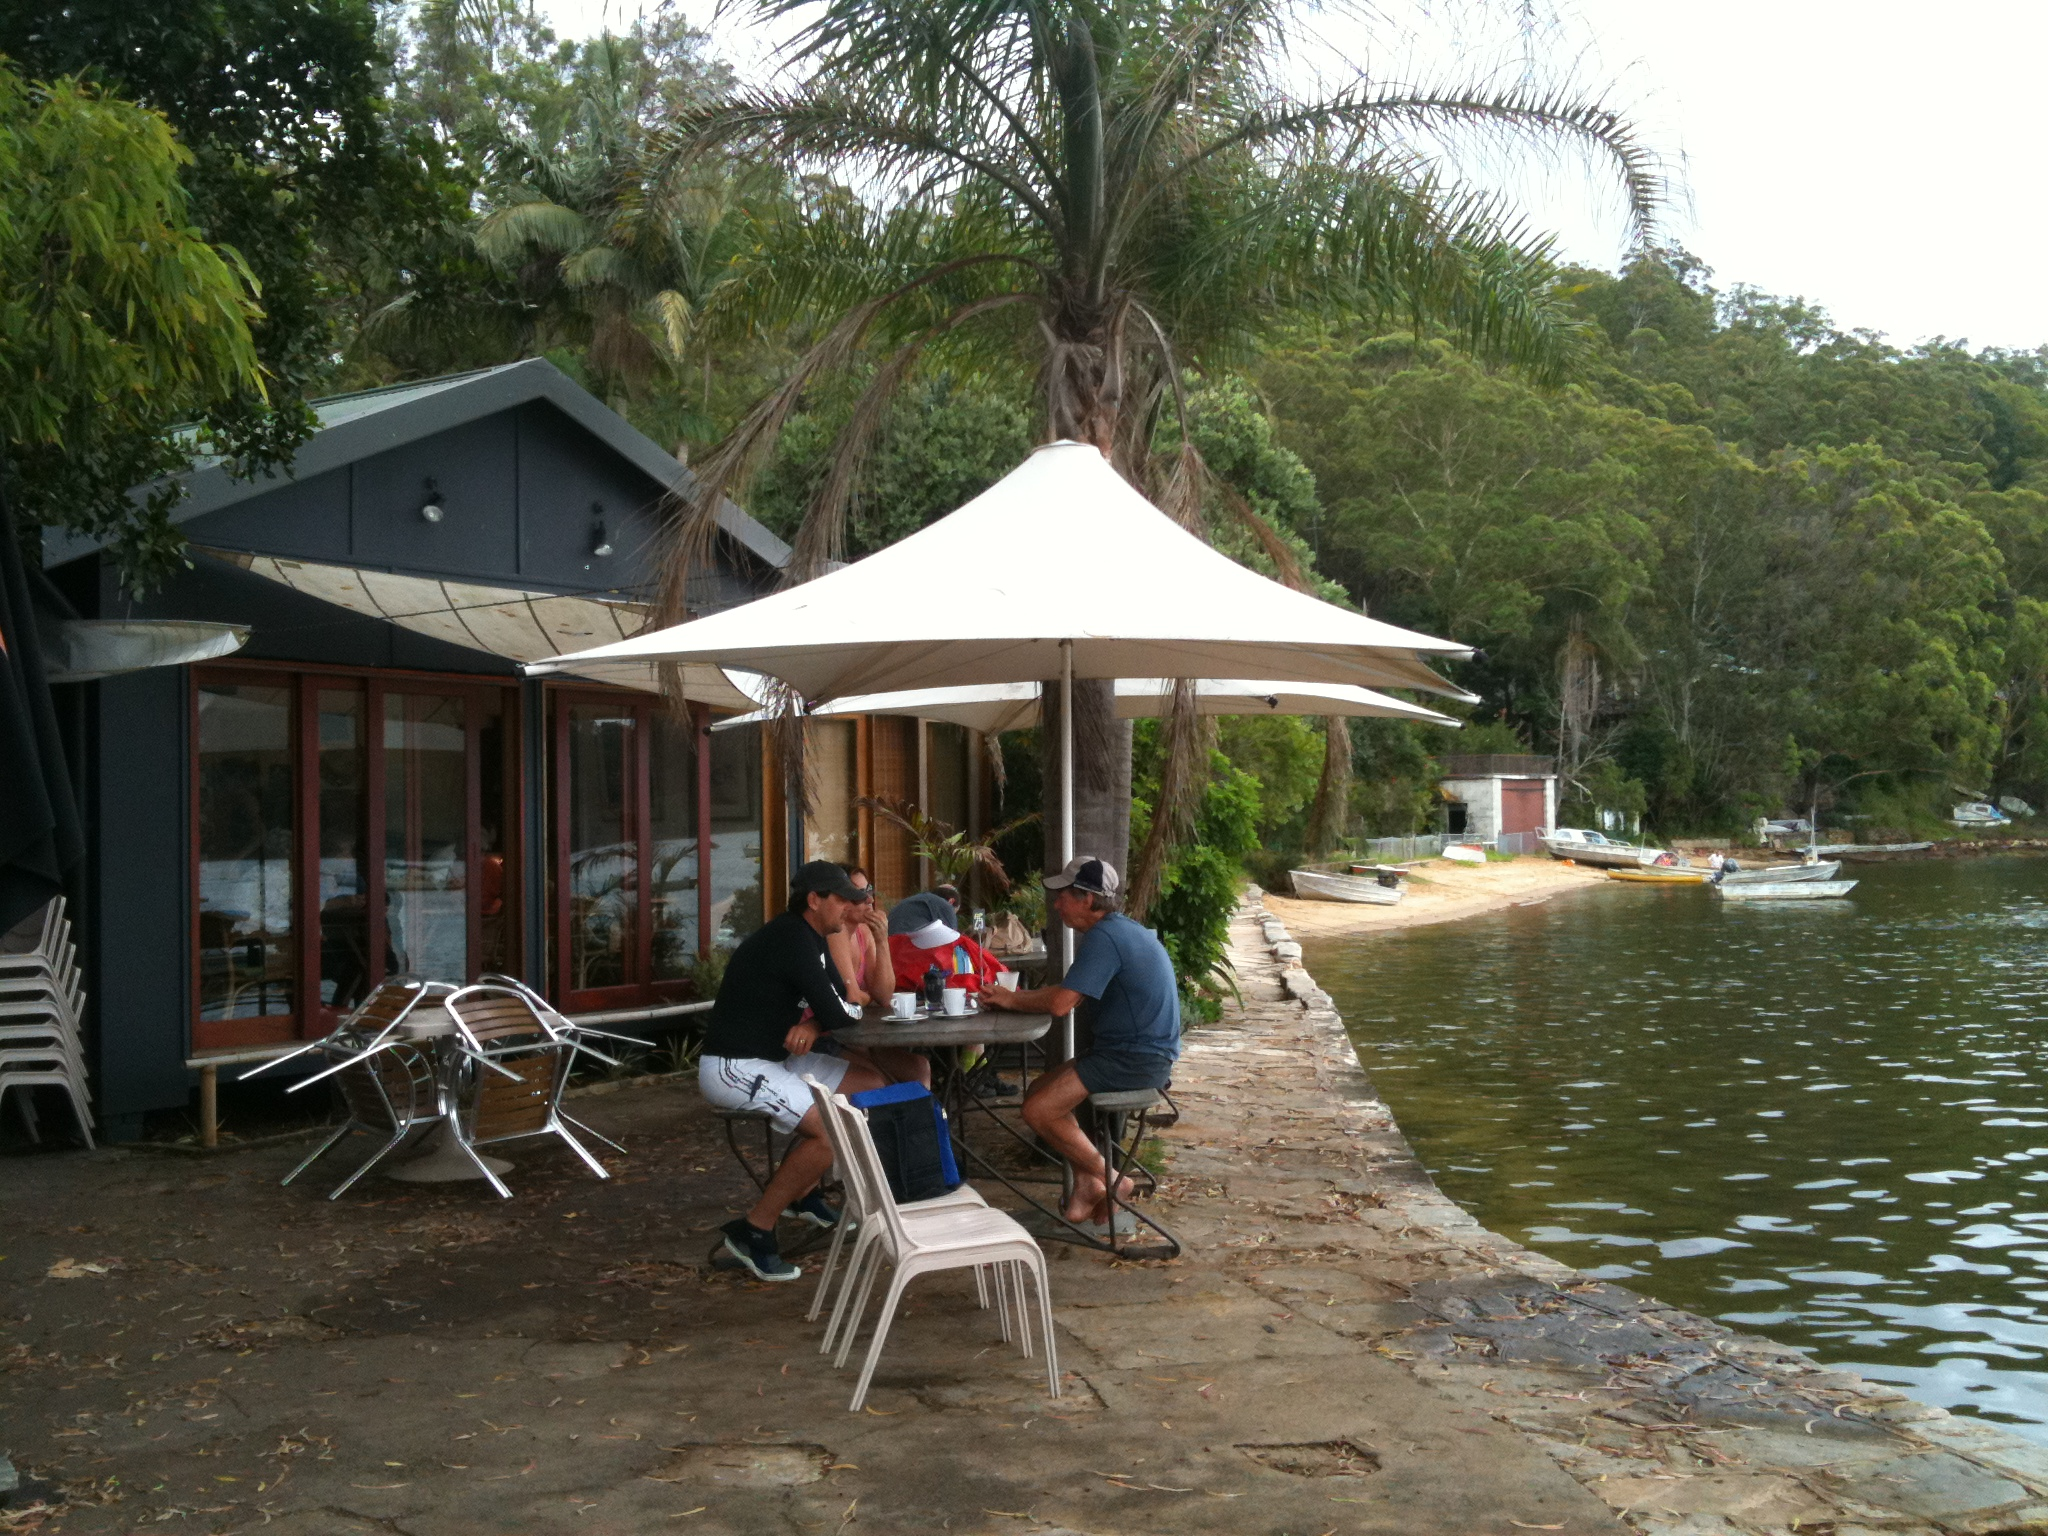 Dangar island nsw